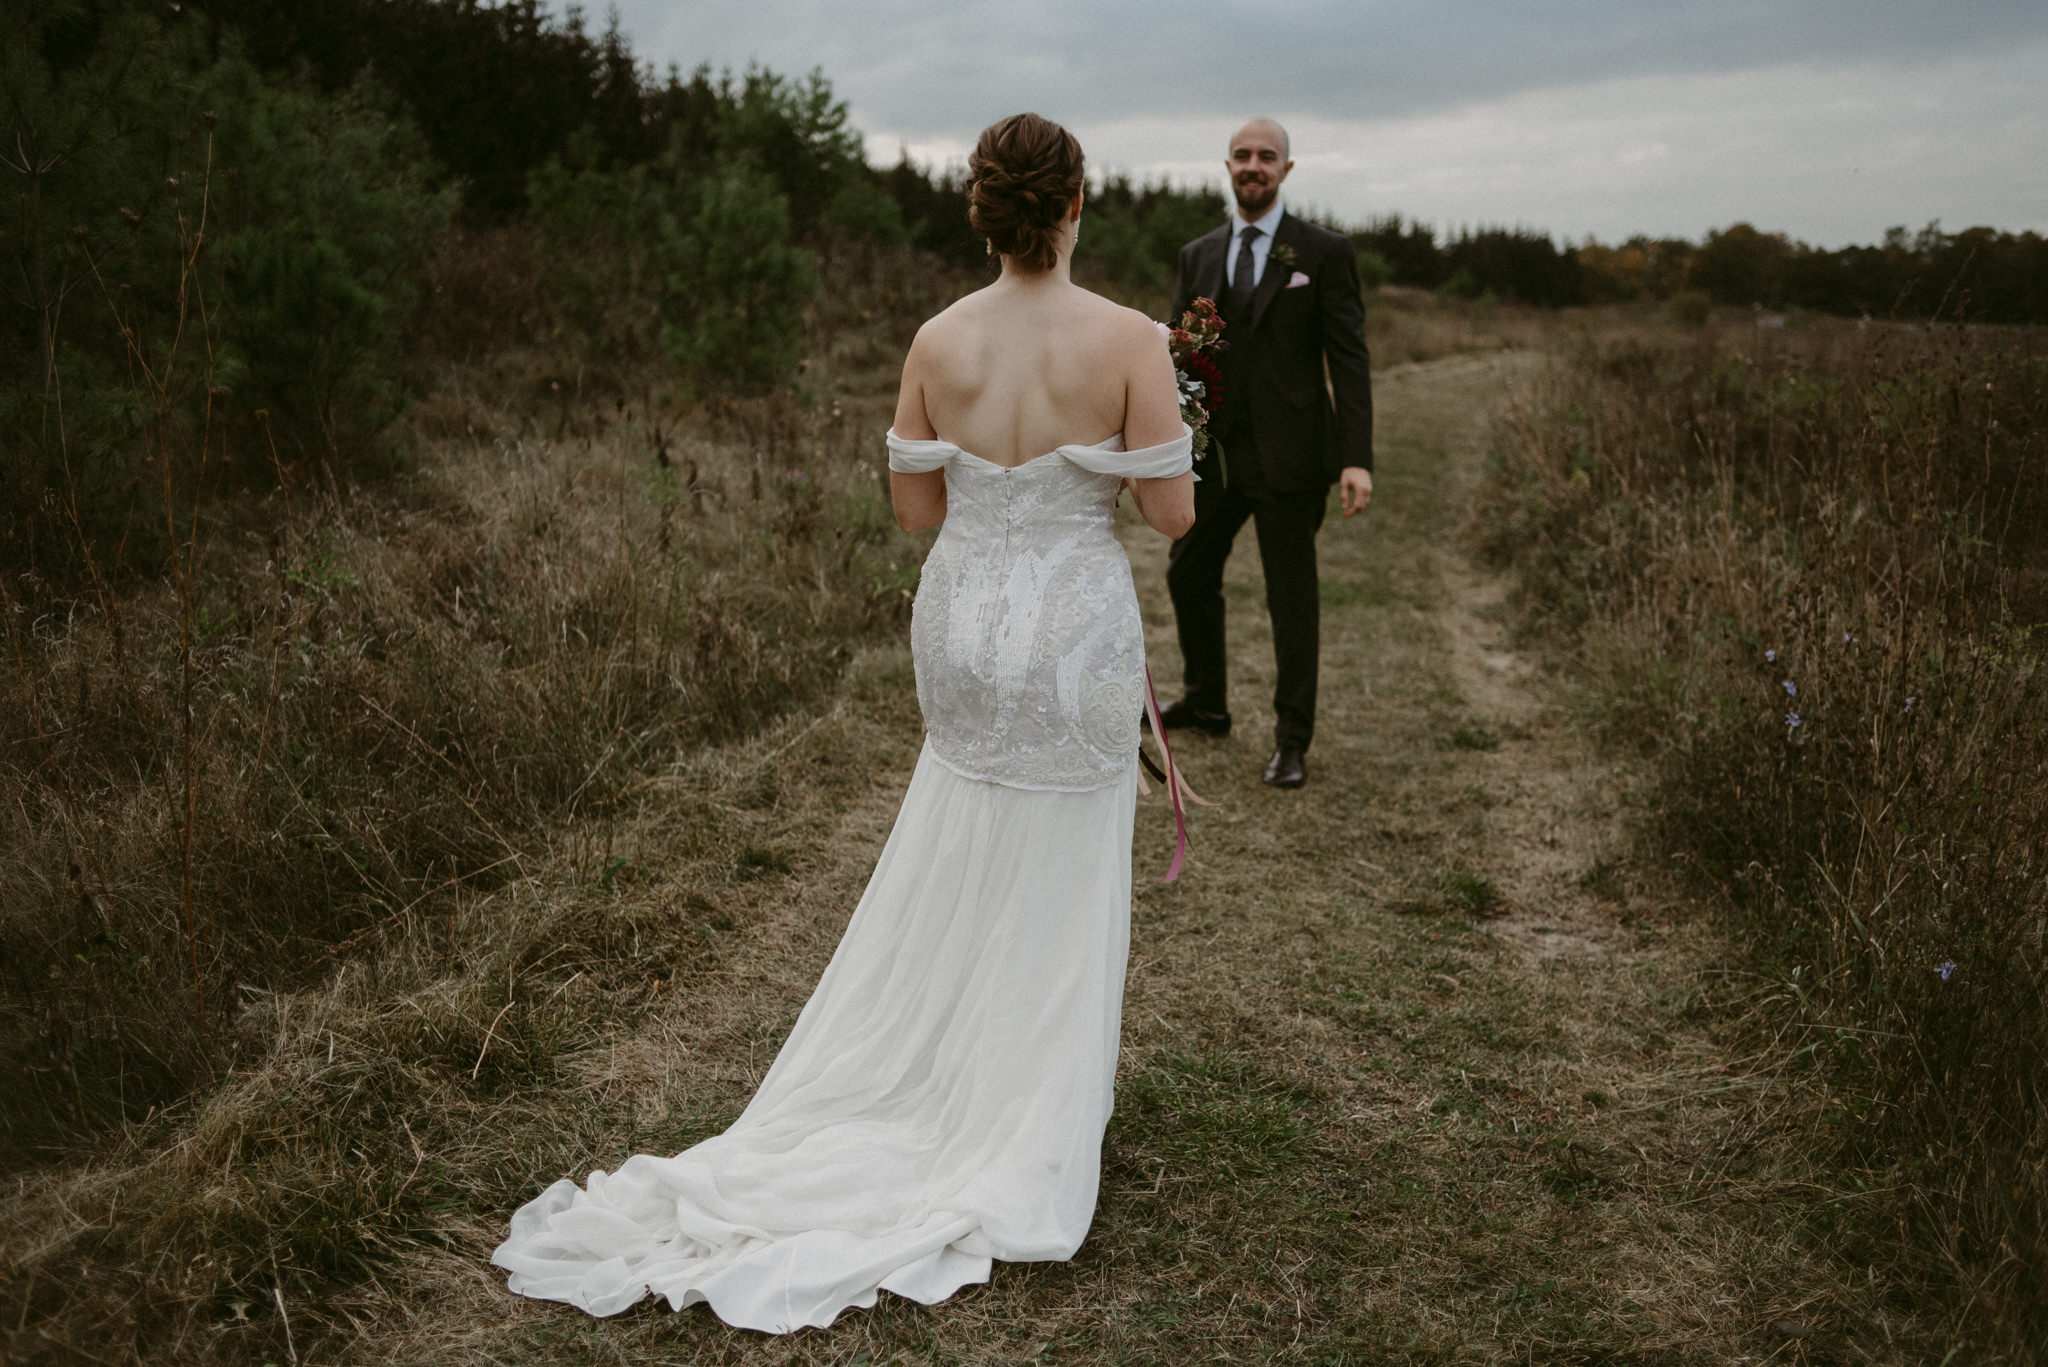 Bride walking towards groom in field